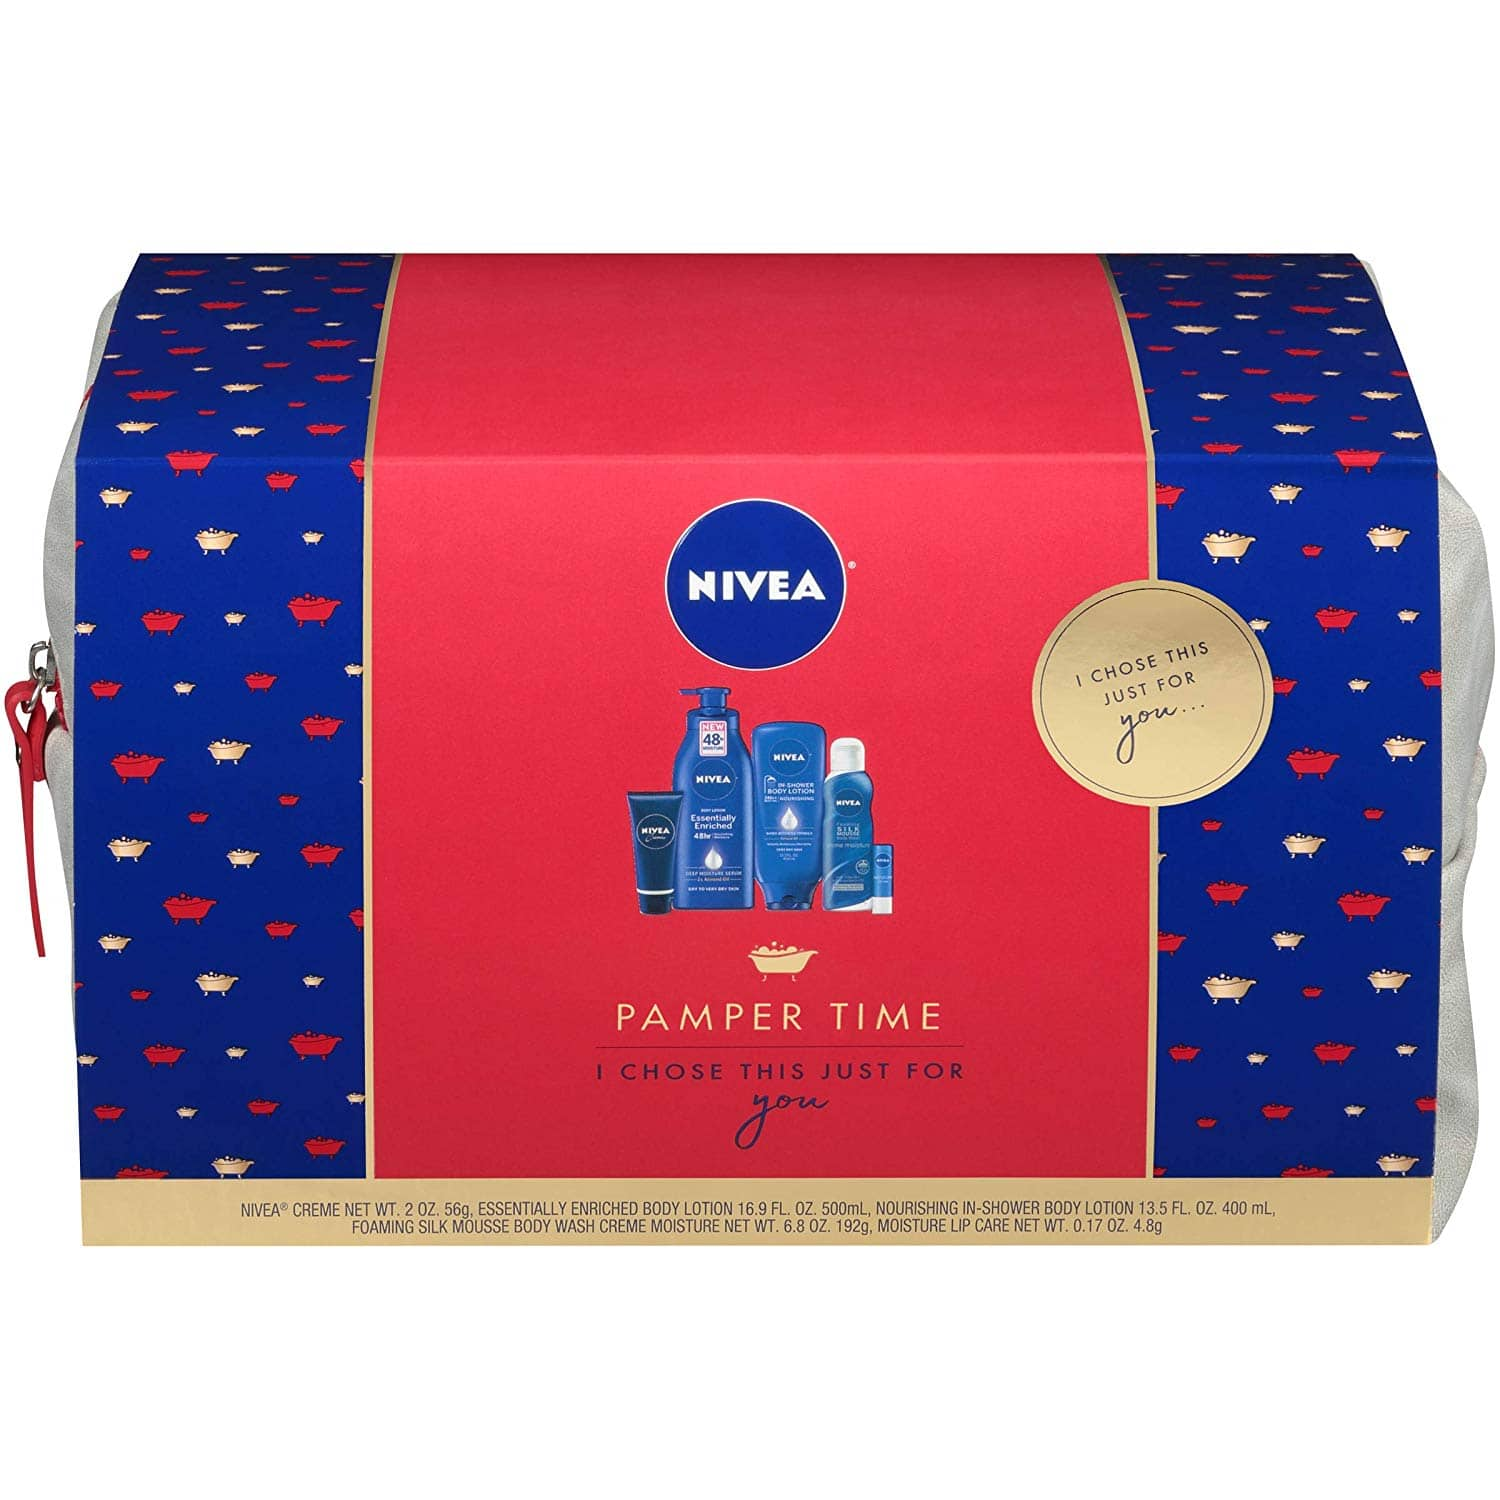 5-Piece Nivea Pamper Time Gift Set $14.39 + Free S&H w/ Prime or orders $25+ ~ Amazon